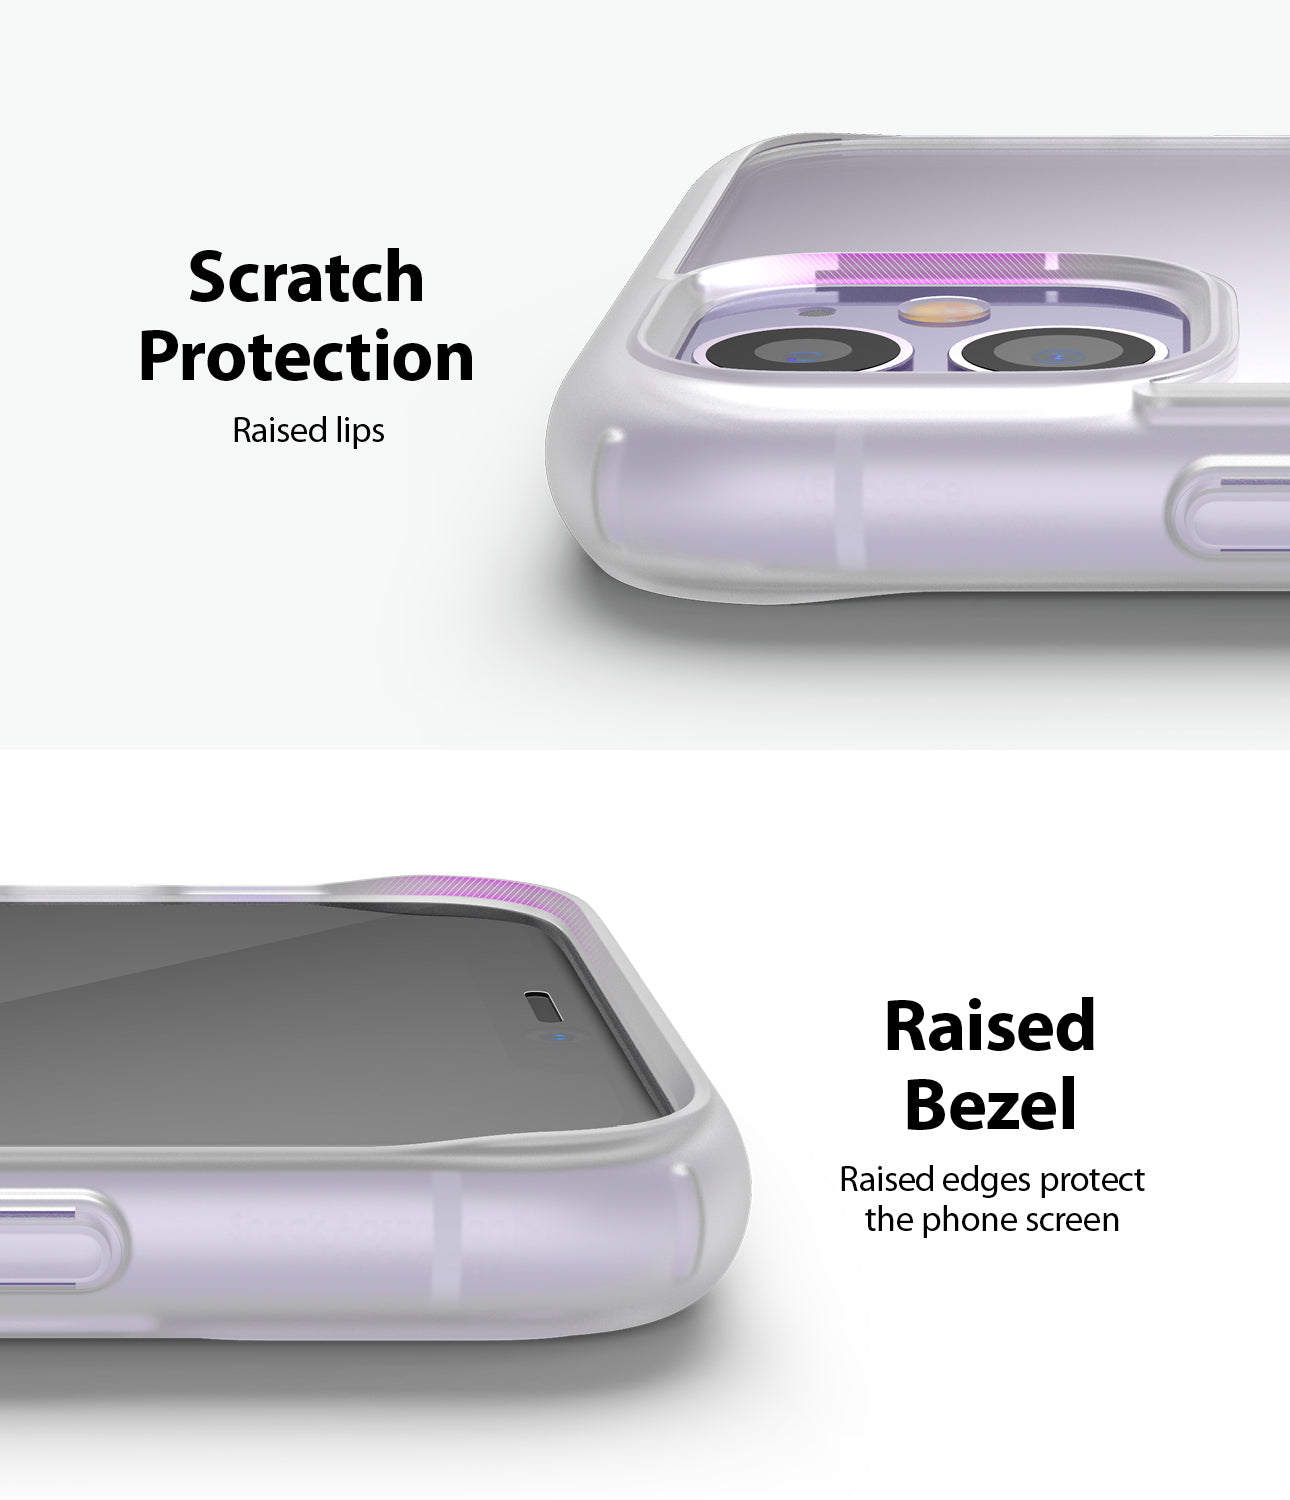 Ringke Fusion Matte for iPhone 11 Anti-Fingerprint Frosted PC Case Scratch Protection Raised Bezel